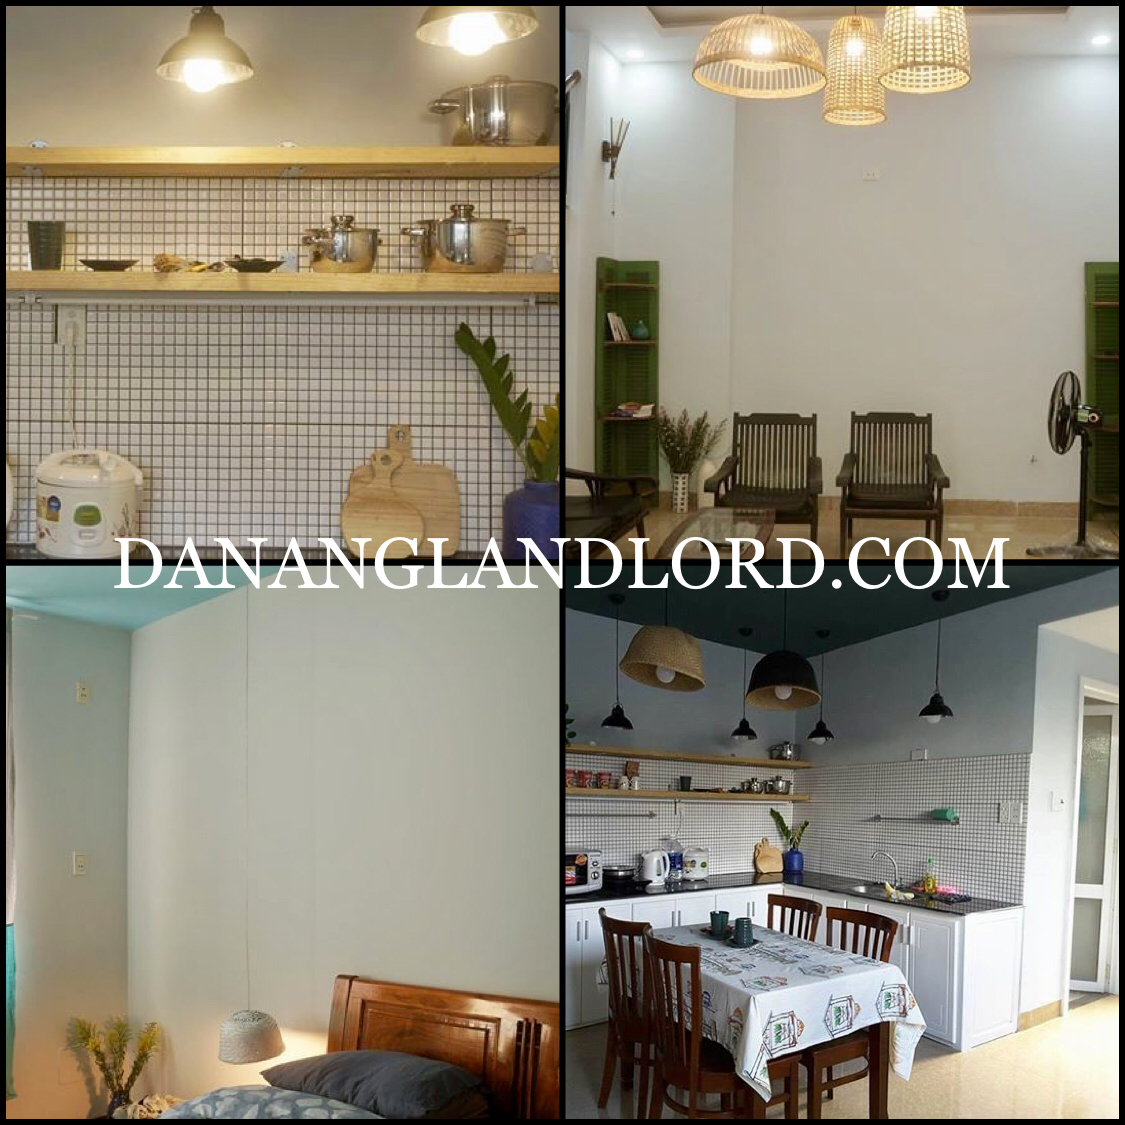 3 bedroom house for rent near Danang airport